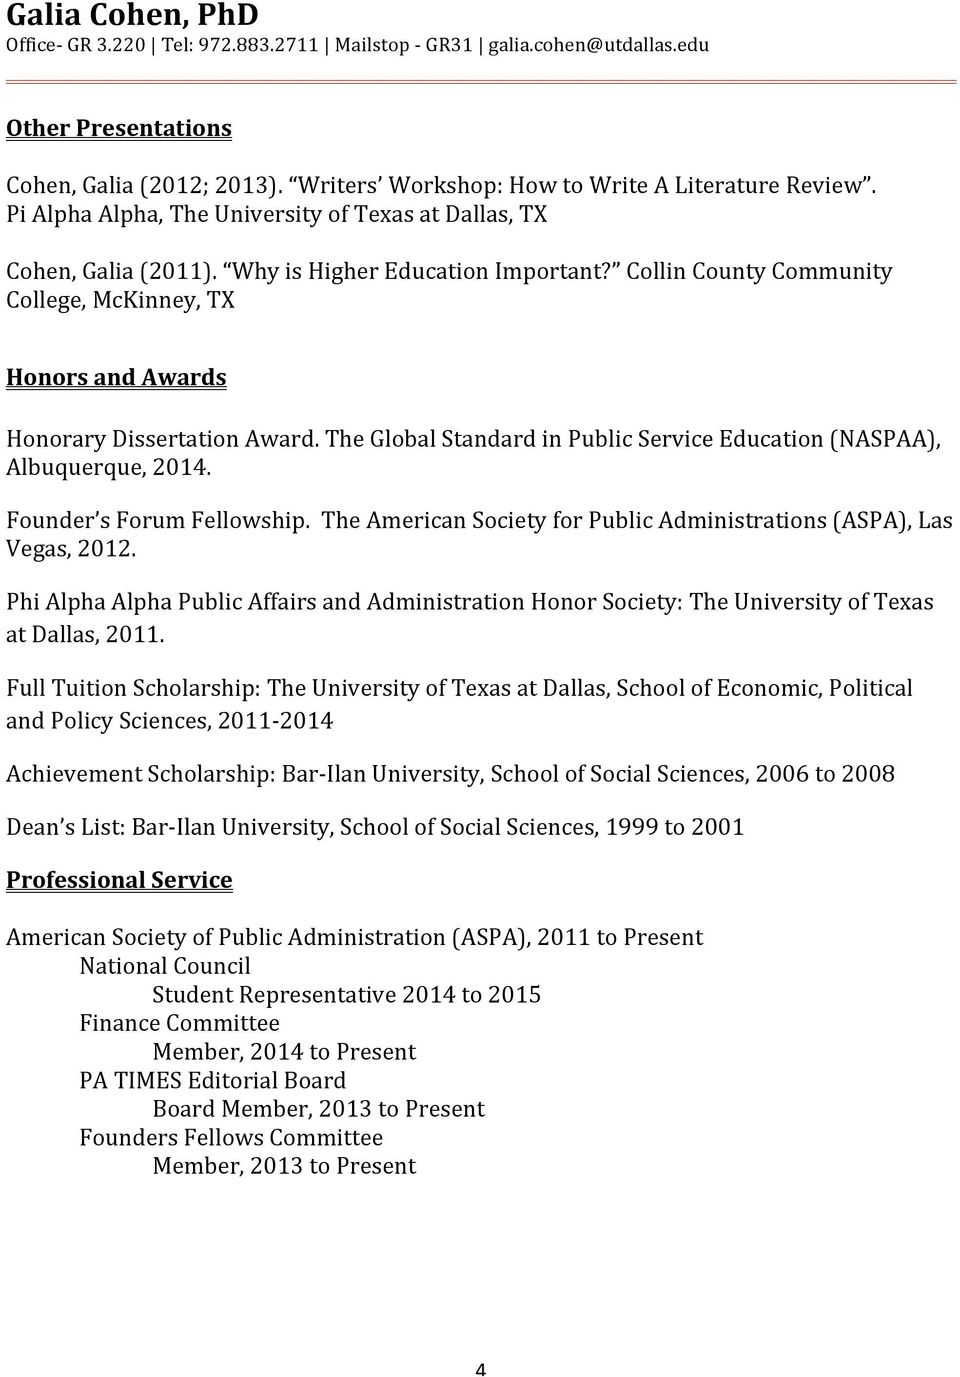 The Global Standard in Public Service Education (NASPAA), Albuquerque, 2014. Founder s Forum Fellowship. The American Society for Public Administrations (ASPA), Las Vegas, 2012.